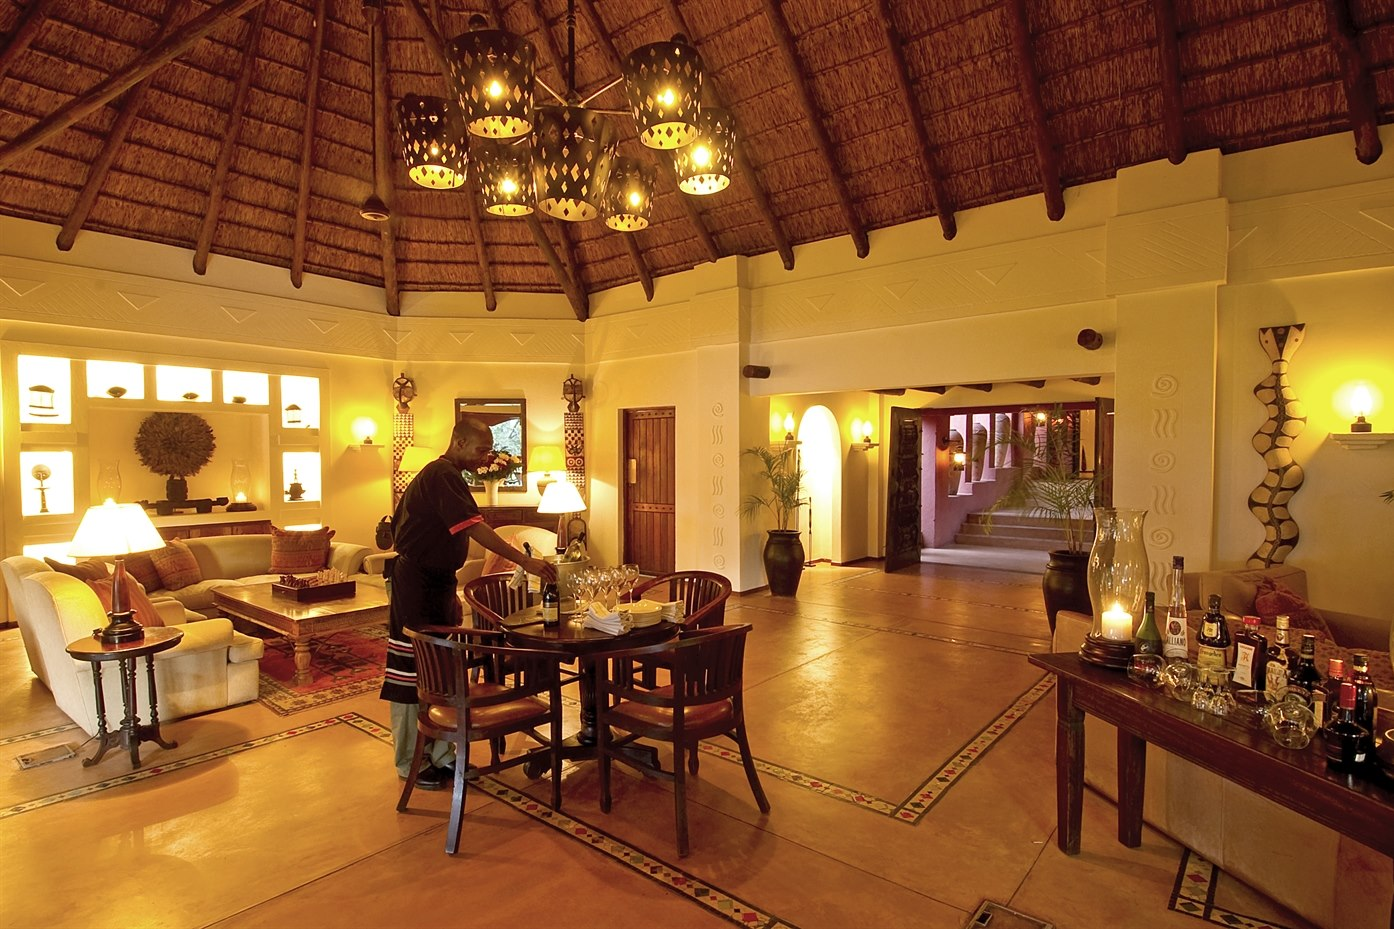 Living Room in Sanctuary Chobe Chilwero